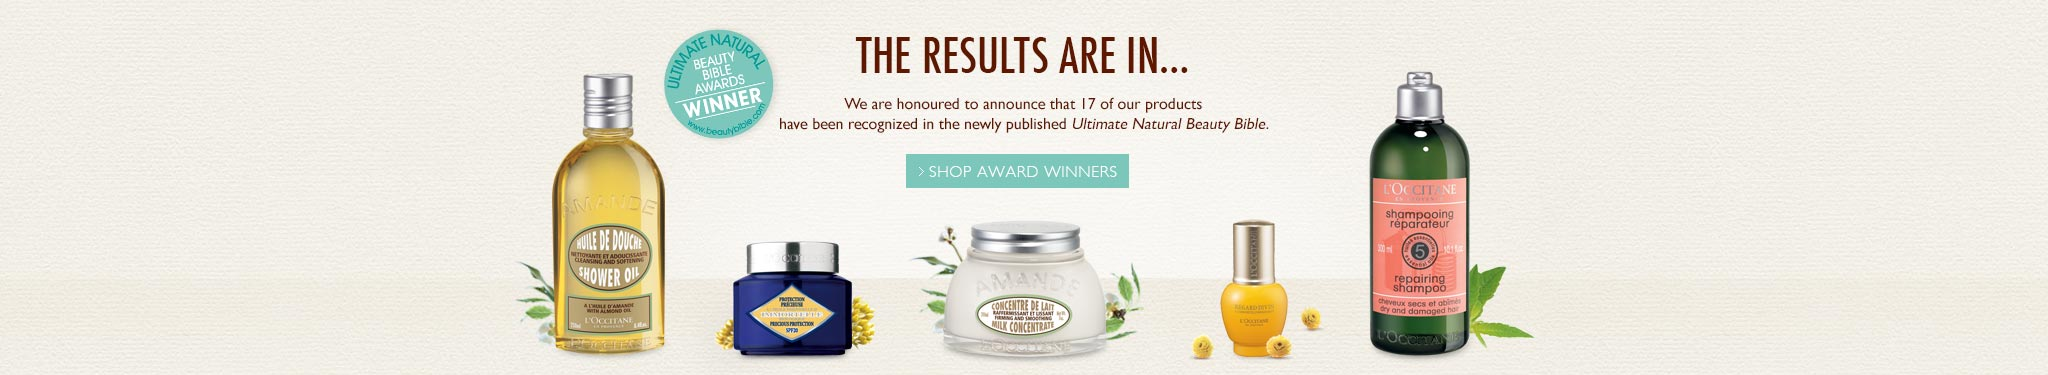 Natural Beauty Bible Award Winners